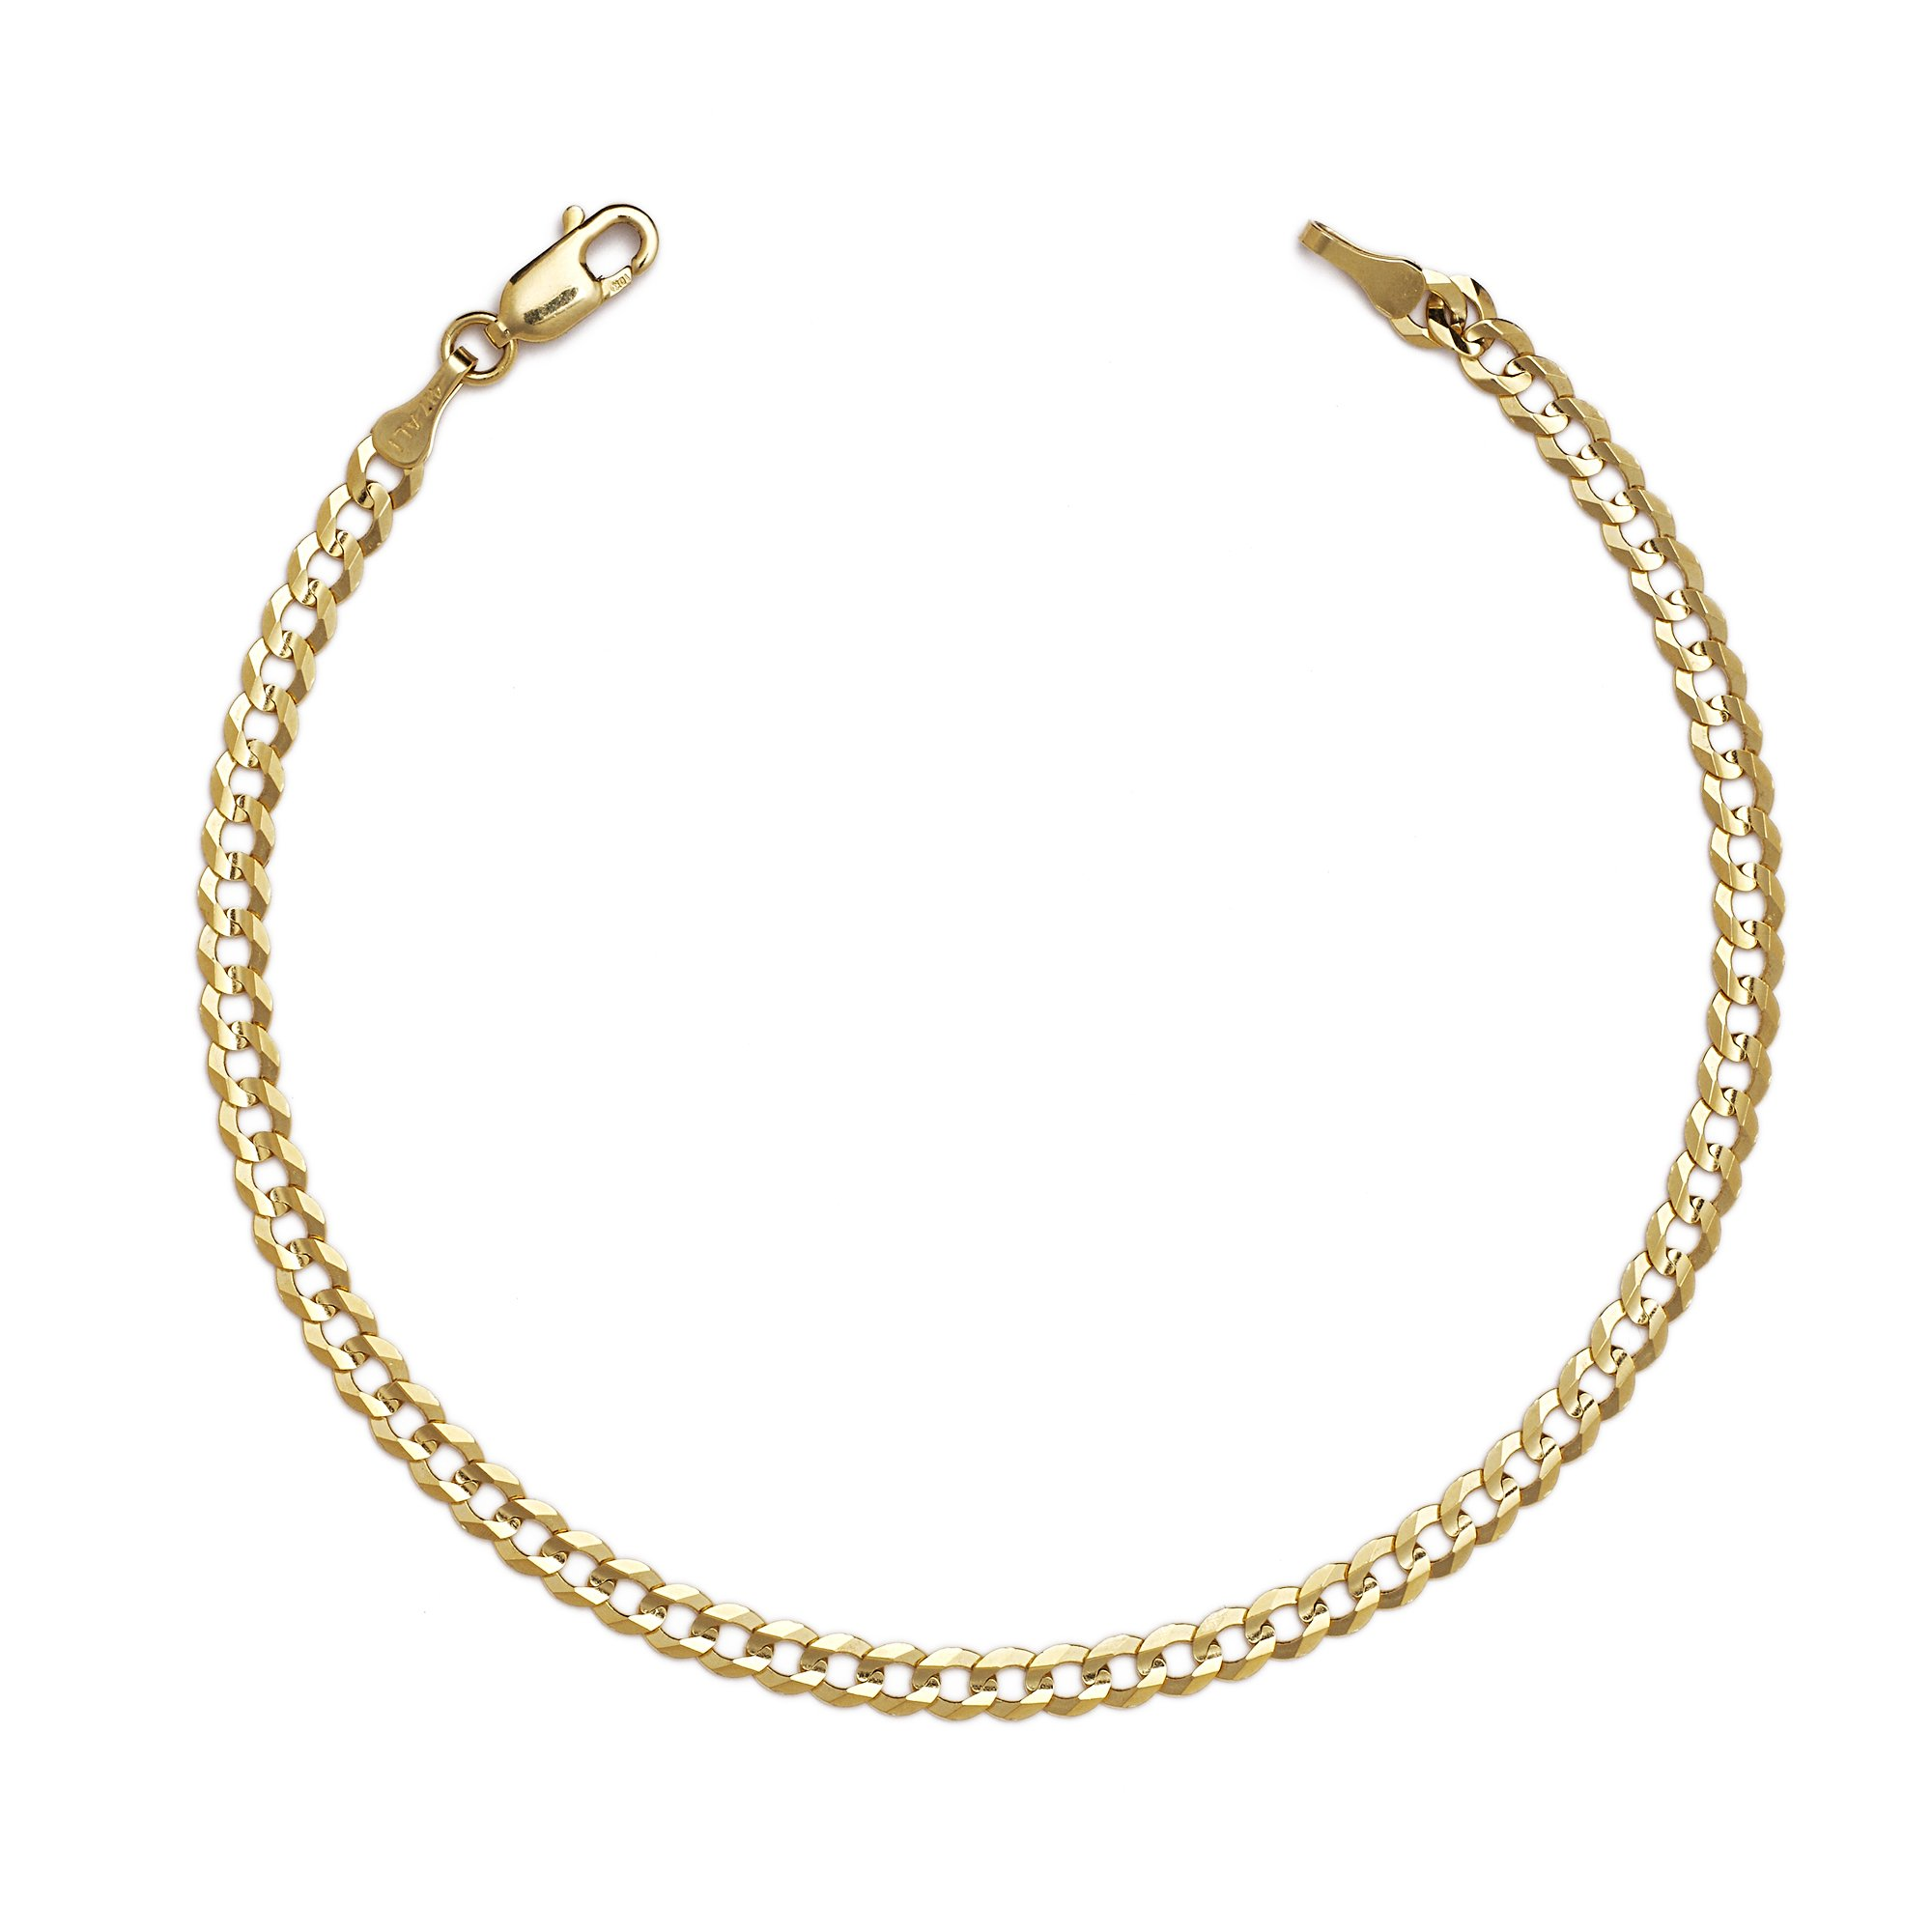 10 Inch 10k Yellow Gold Curb Cuban Chain Ankle Bracelet Anklet for Women and Girls, 0.16 Inch (4mm) by SL Gold Imports (Image #4)